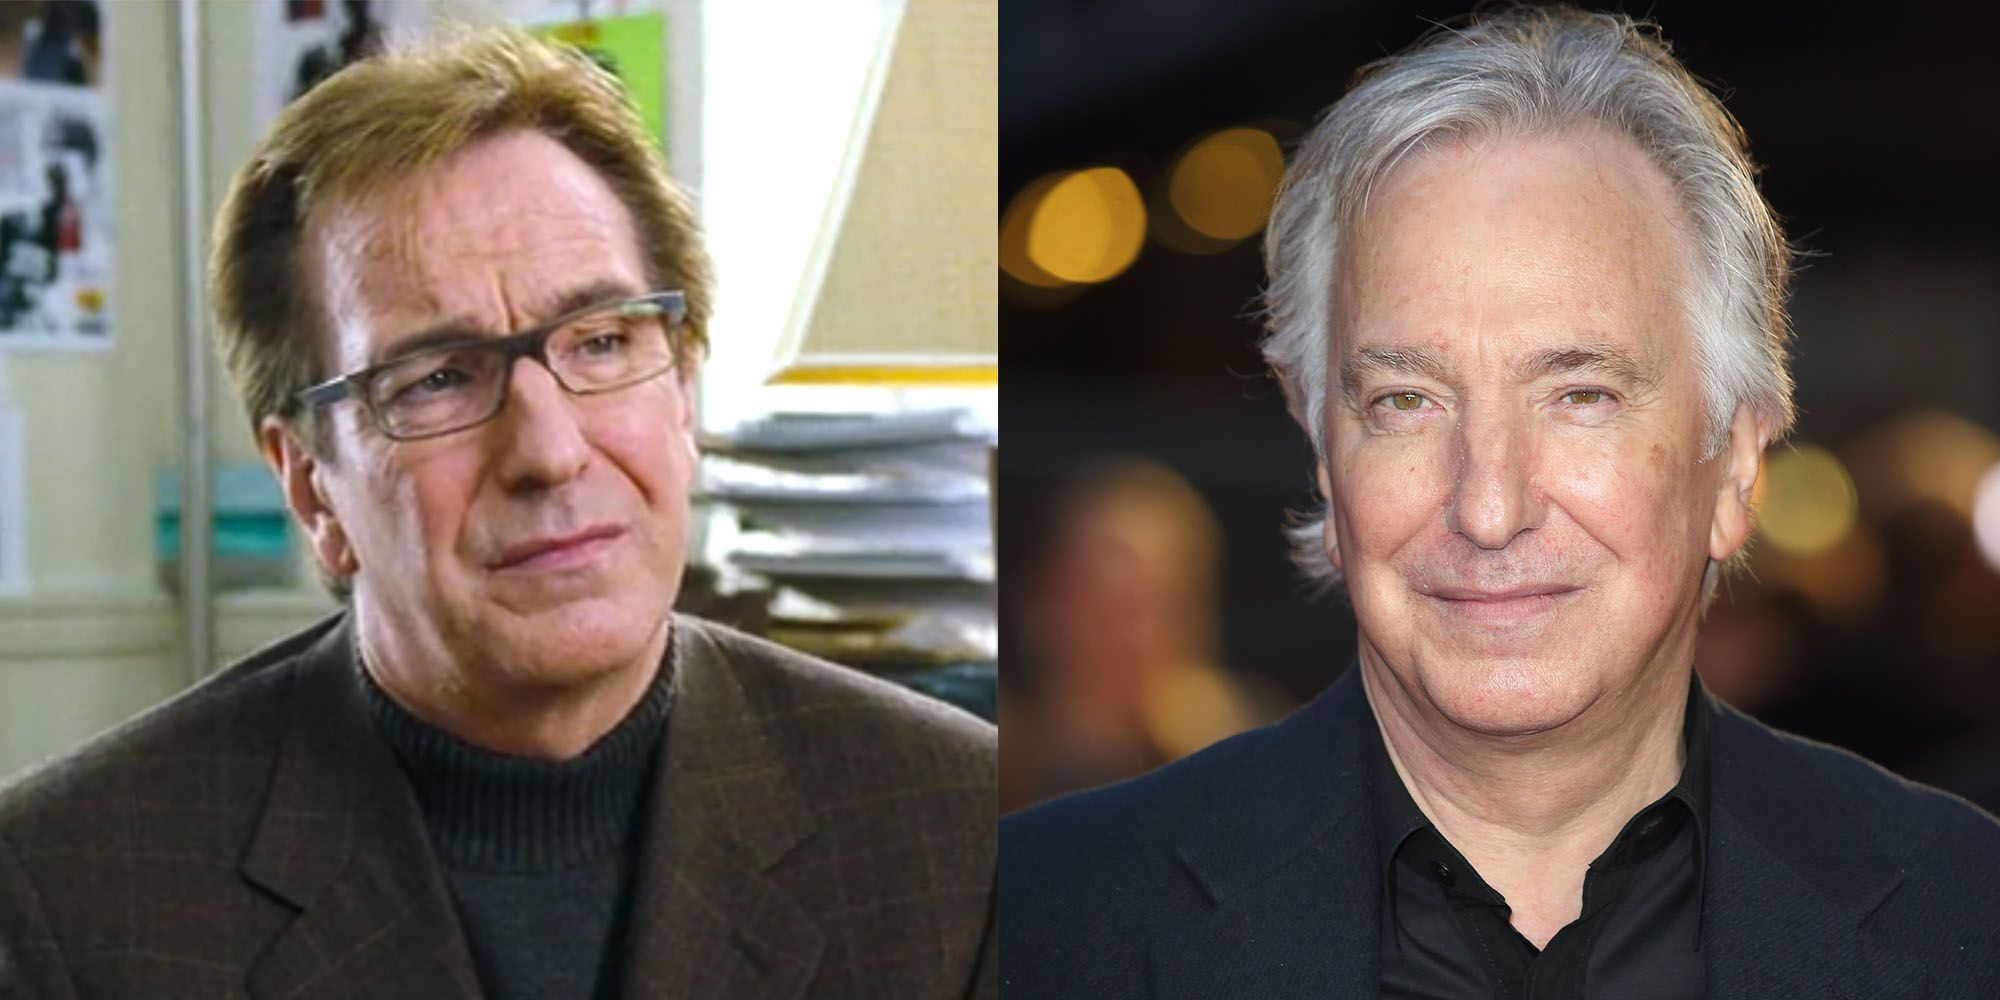 "<p>Rickman continued to play the bittersweet role of <strong data-redactor-tag=""strong"" data-verified=""redactor"">Professor Severus Snape in the <i data-redactor-tag=""i"">Harry Potter </i>film series </strong>after working on <i data-redactor-tag=""i"">Love Actually.</i> In 2007, the Golden Globe–winning actor worked with Johnny Depp and fellow <i data-redactor-tag=""i"">Harry Potter </i>star Helena Bonham Carter in the movie adaptation of <i data-redactor-tag=""i"">Sweeney Todd</i>. The much-loved actor passed away in January 2016, not long after being diagnosed with pancreatic cancer.<br></p>"